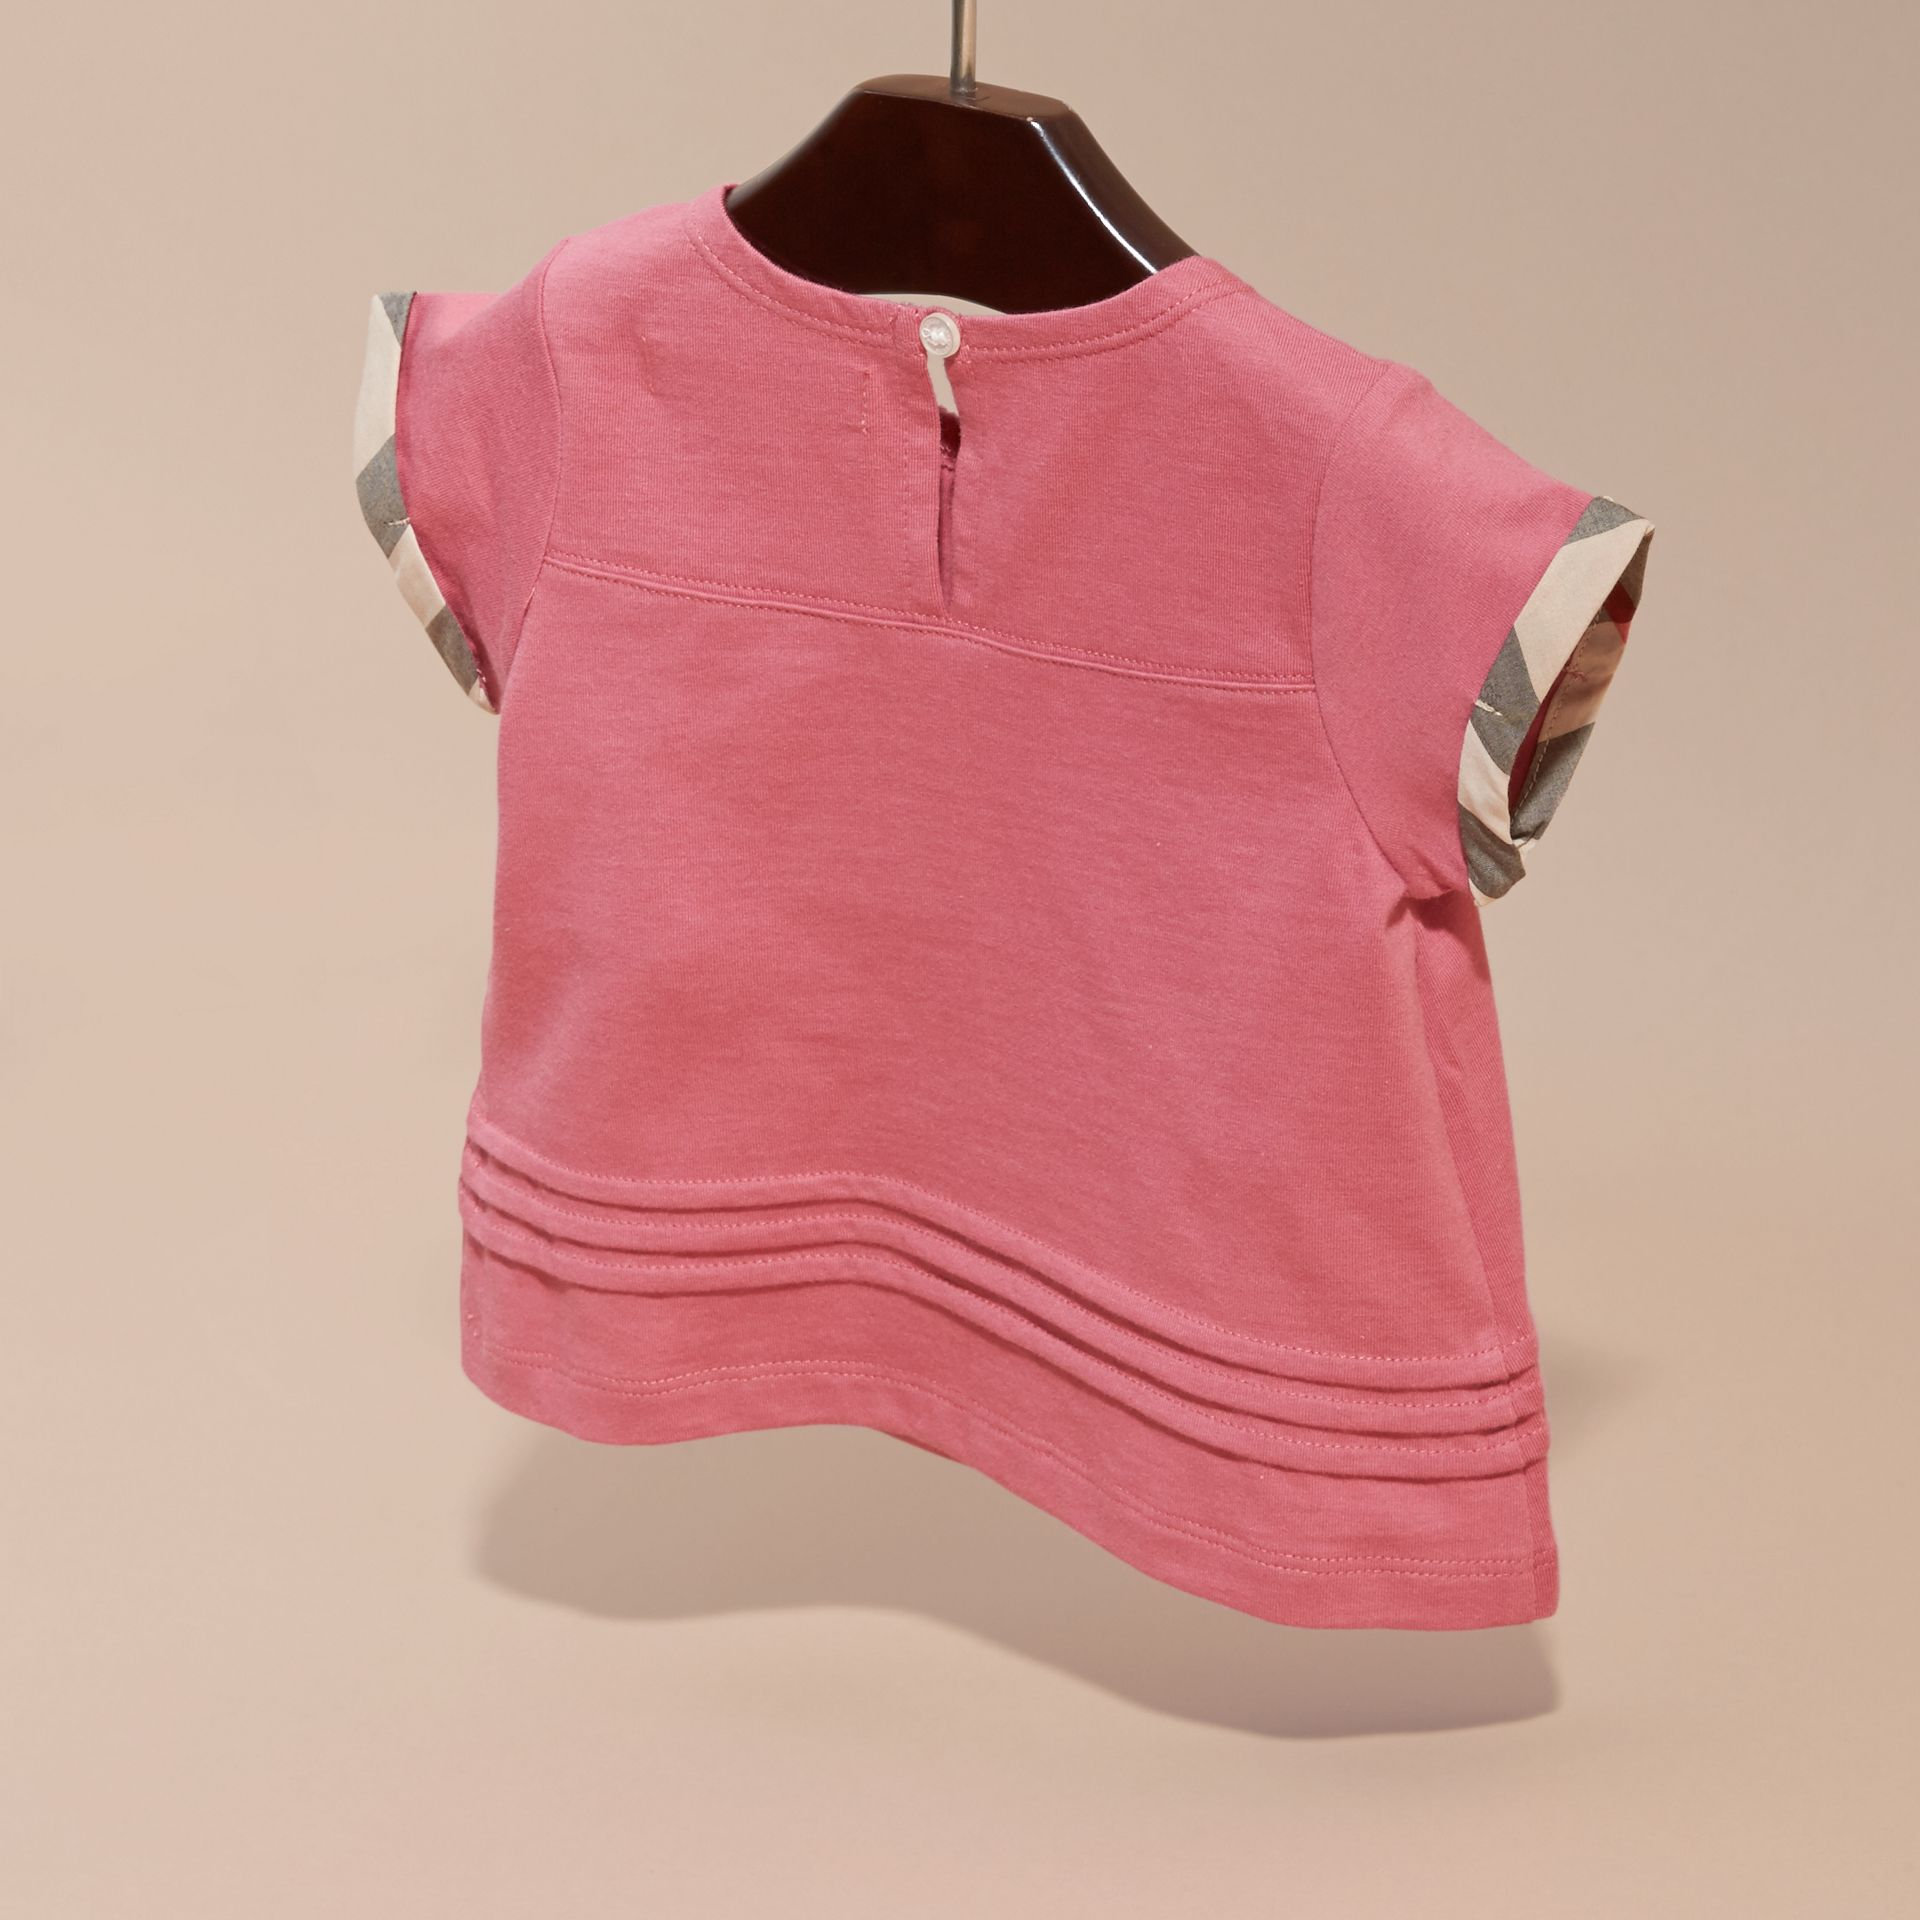 Pink azalea Check Trim Cotton T-shirt Pink Azalea - gallery image 4